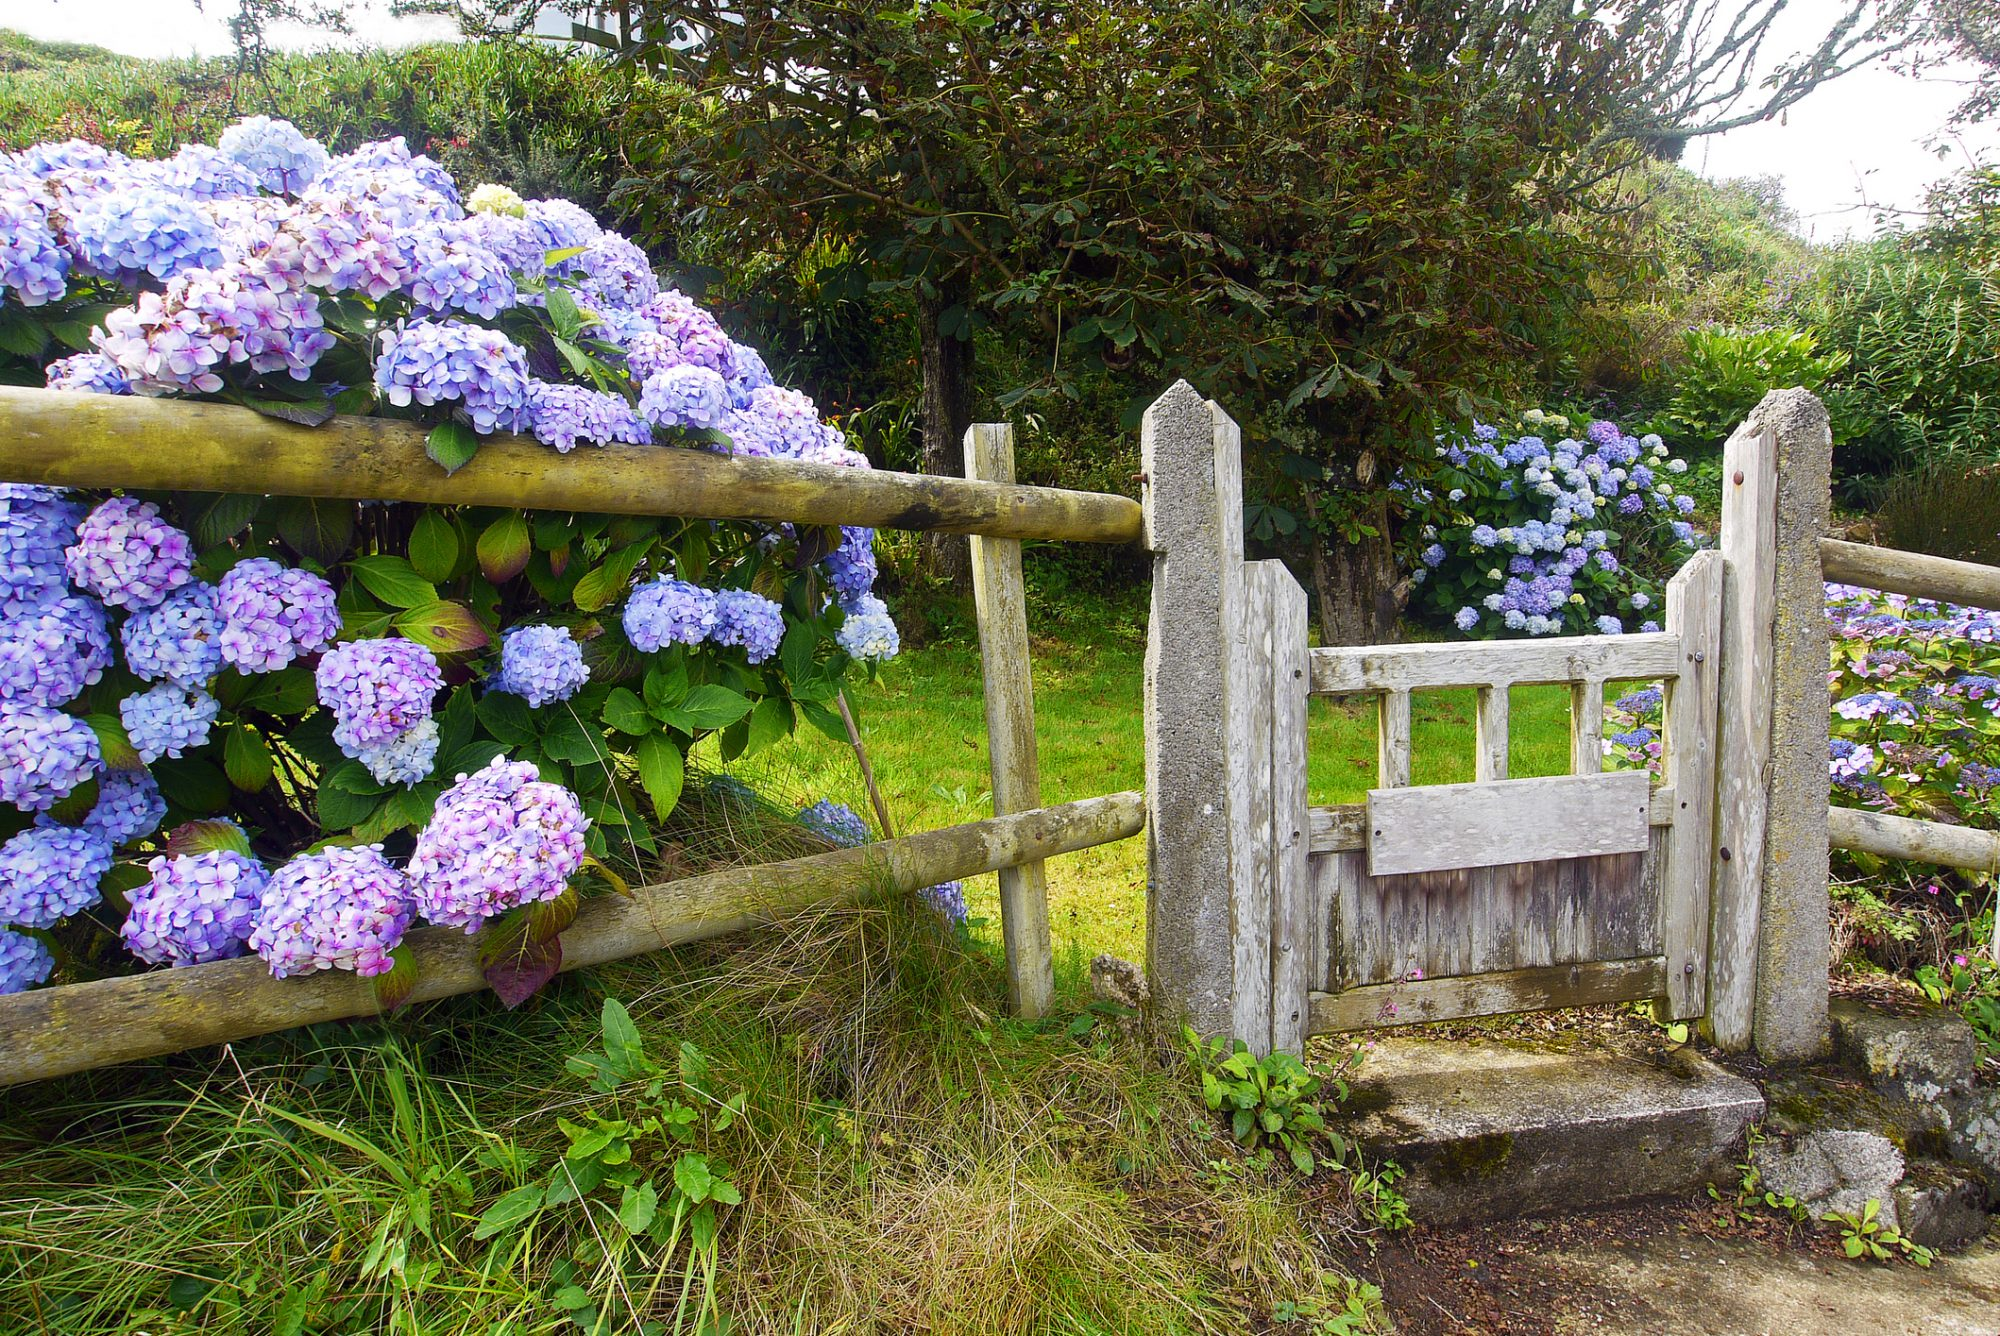 Purple hydrangeas against rustic fence and gate